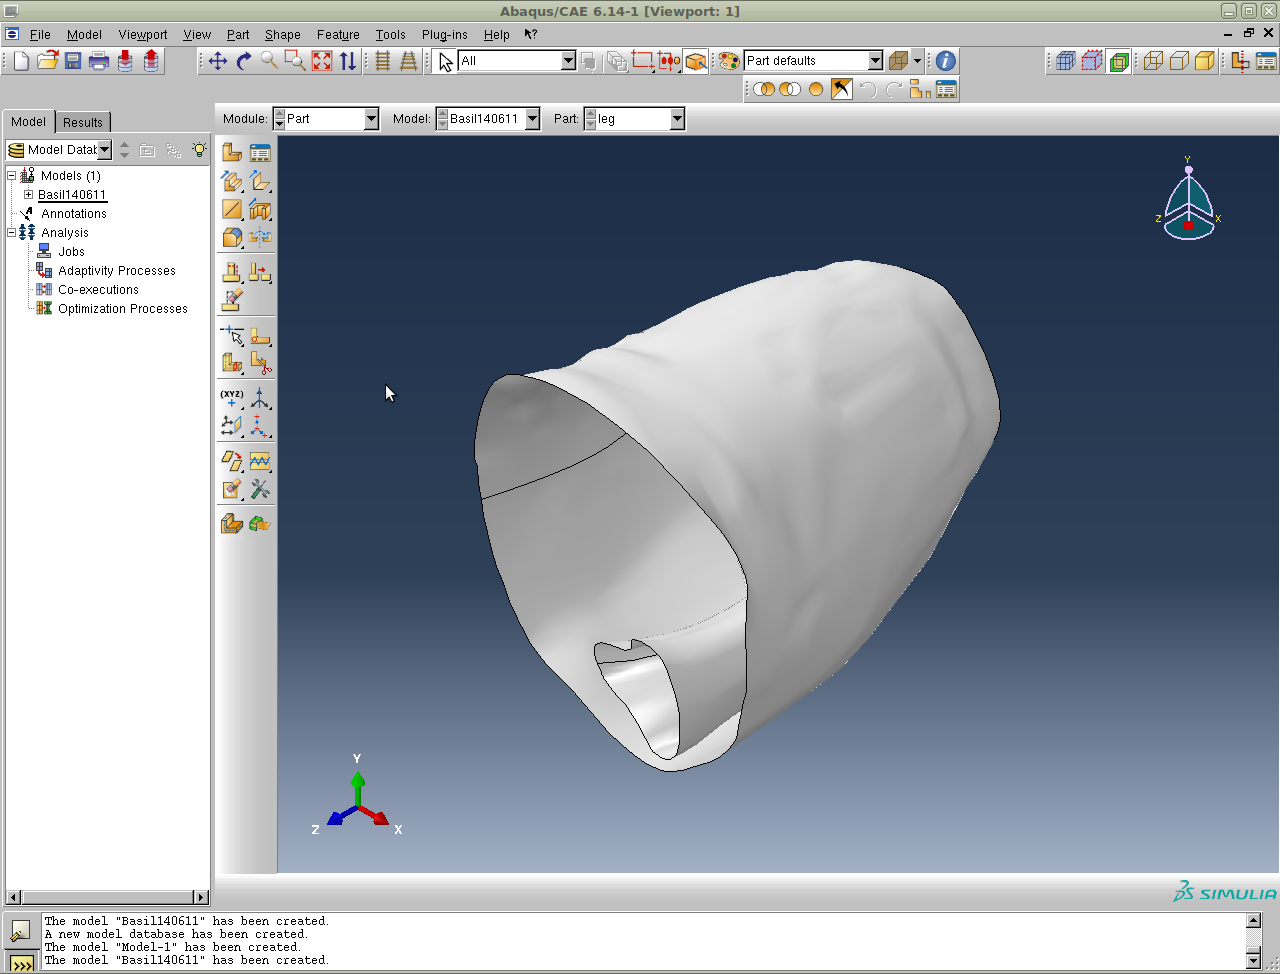 documentation/abaqus_twoLofts.png